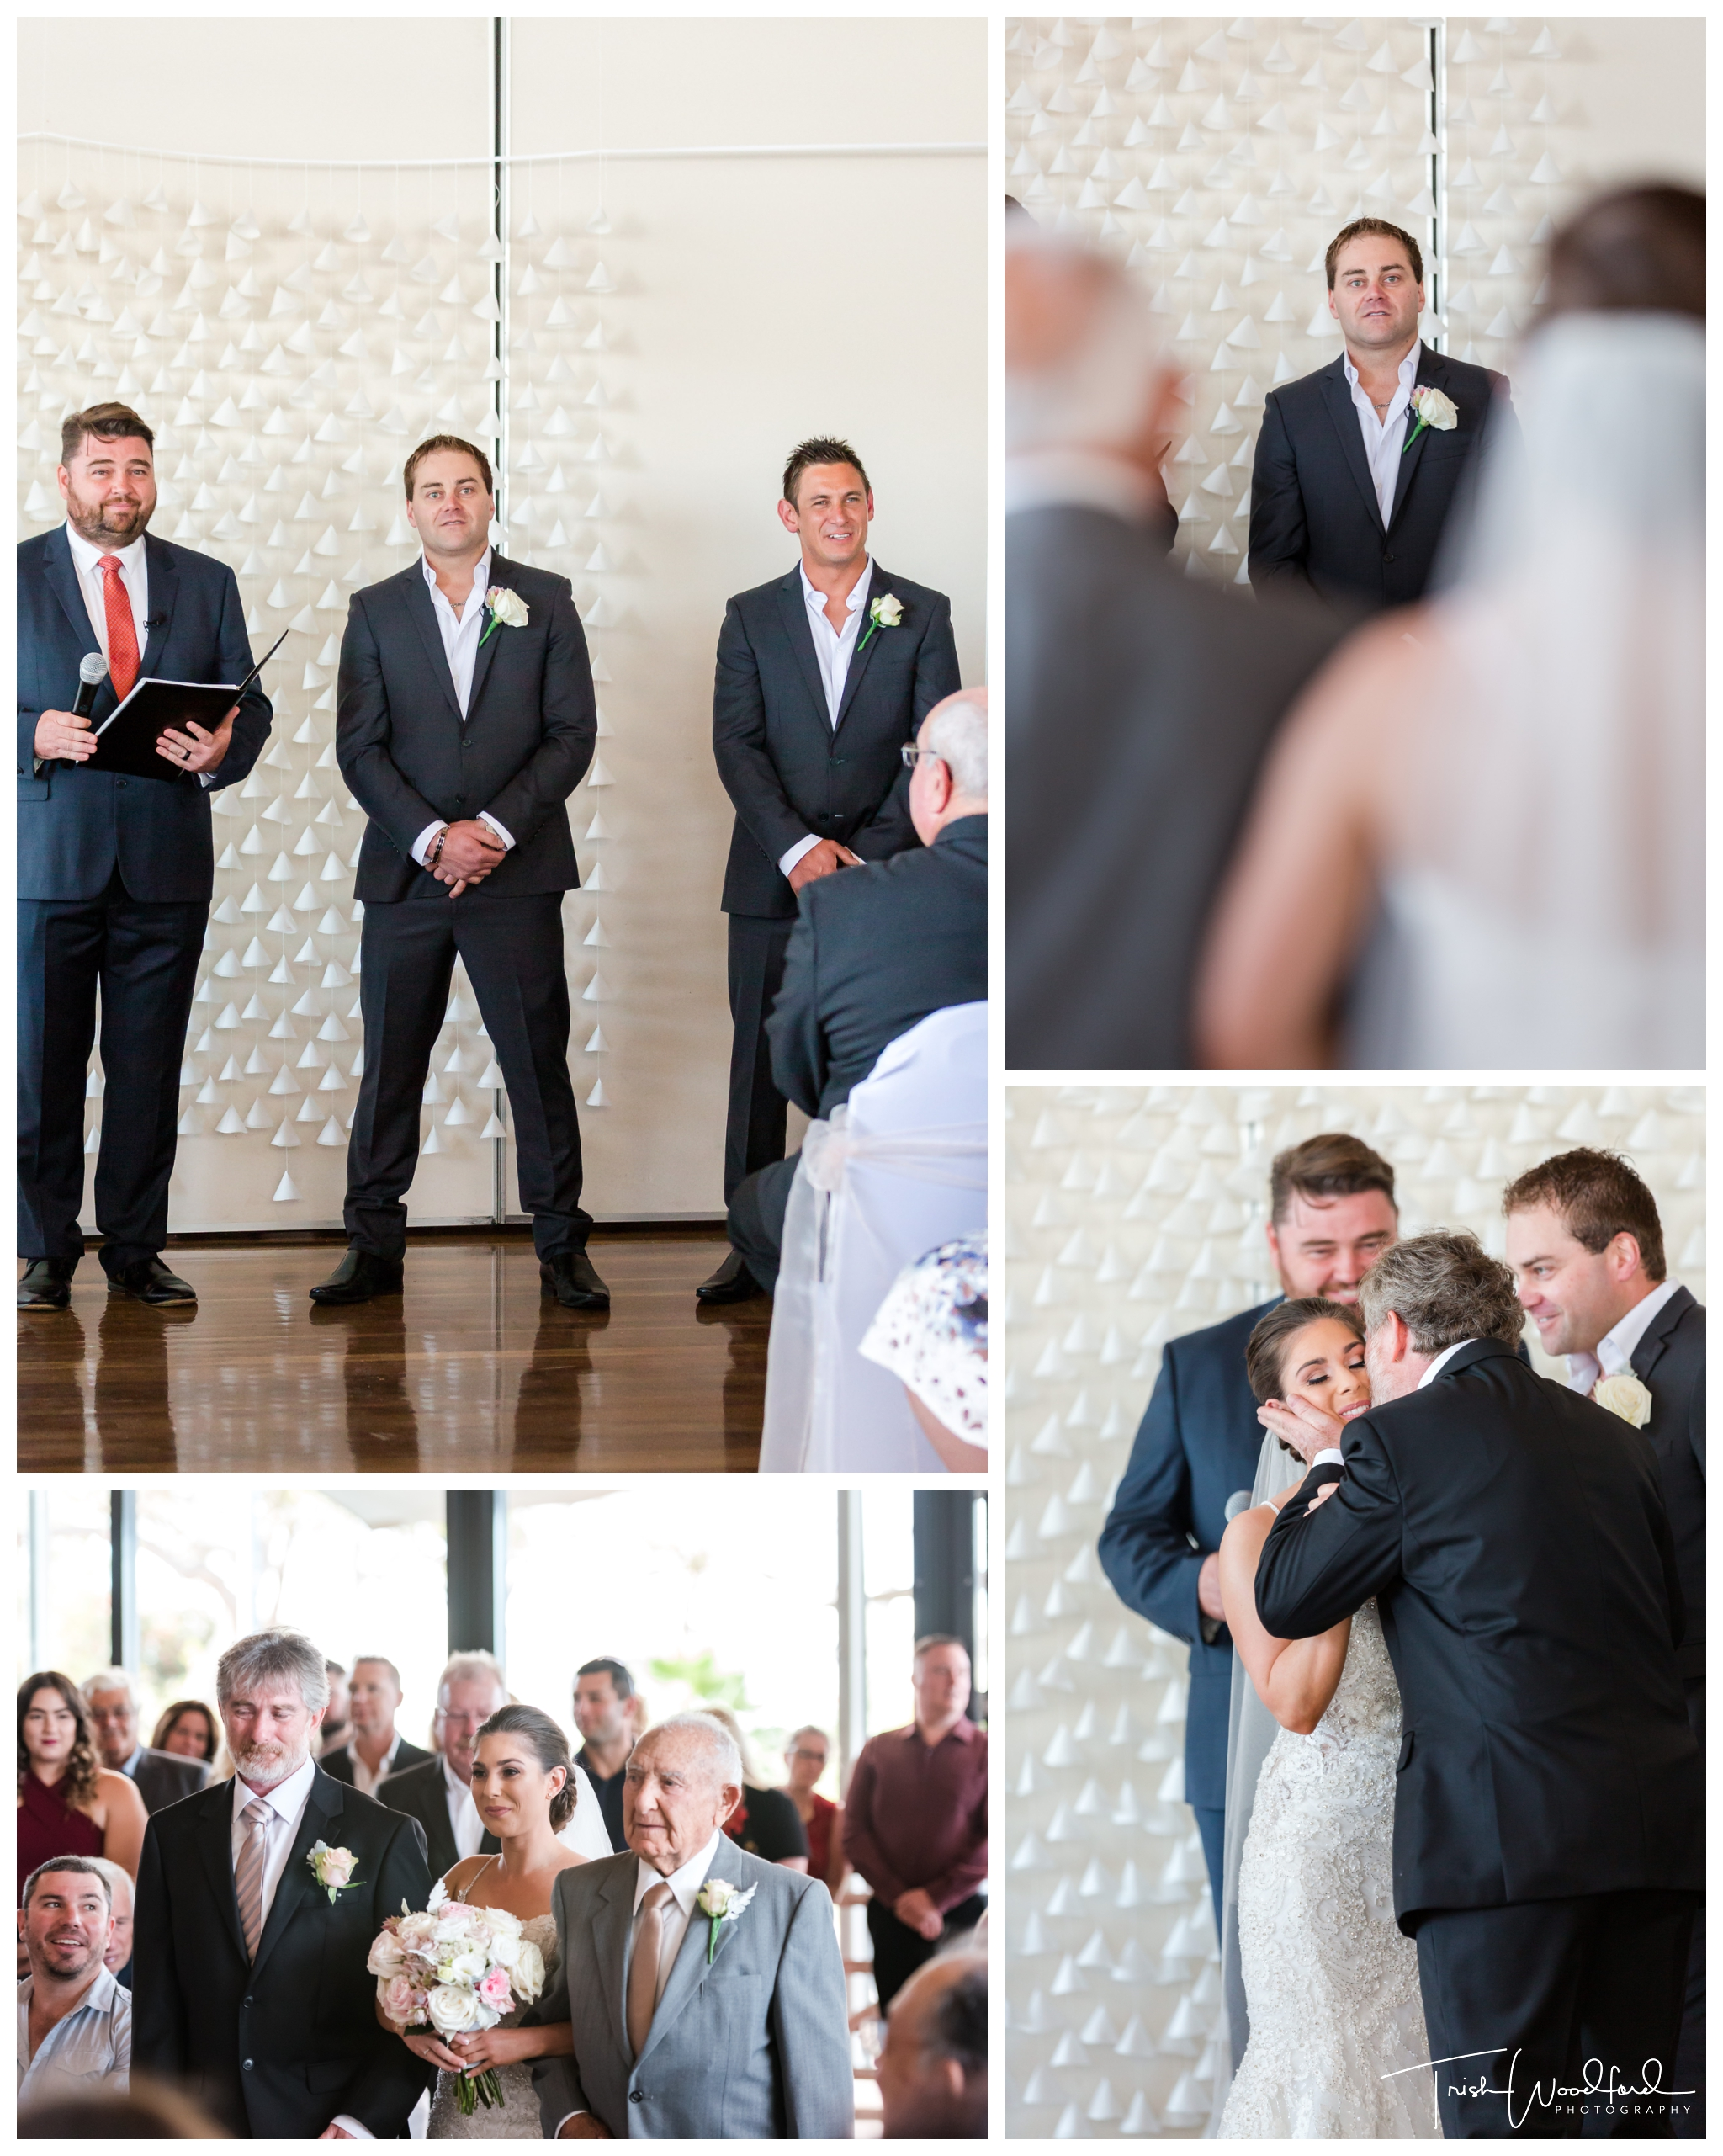 Mandurah Quay Resort Wedding Ceremony